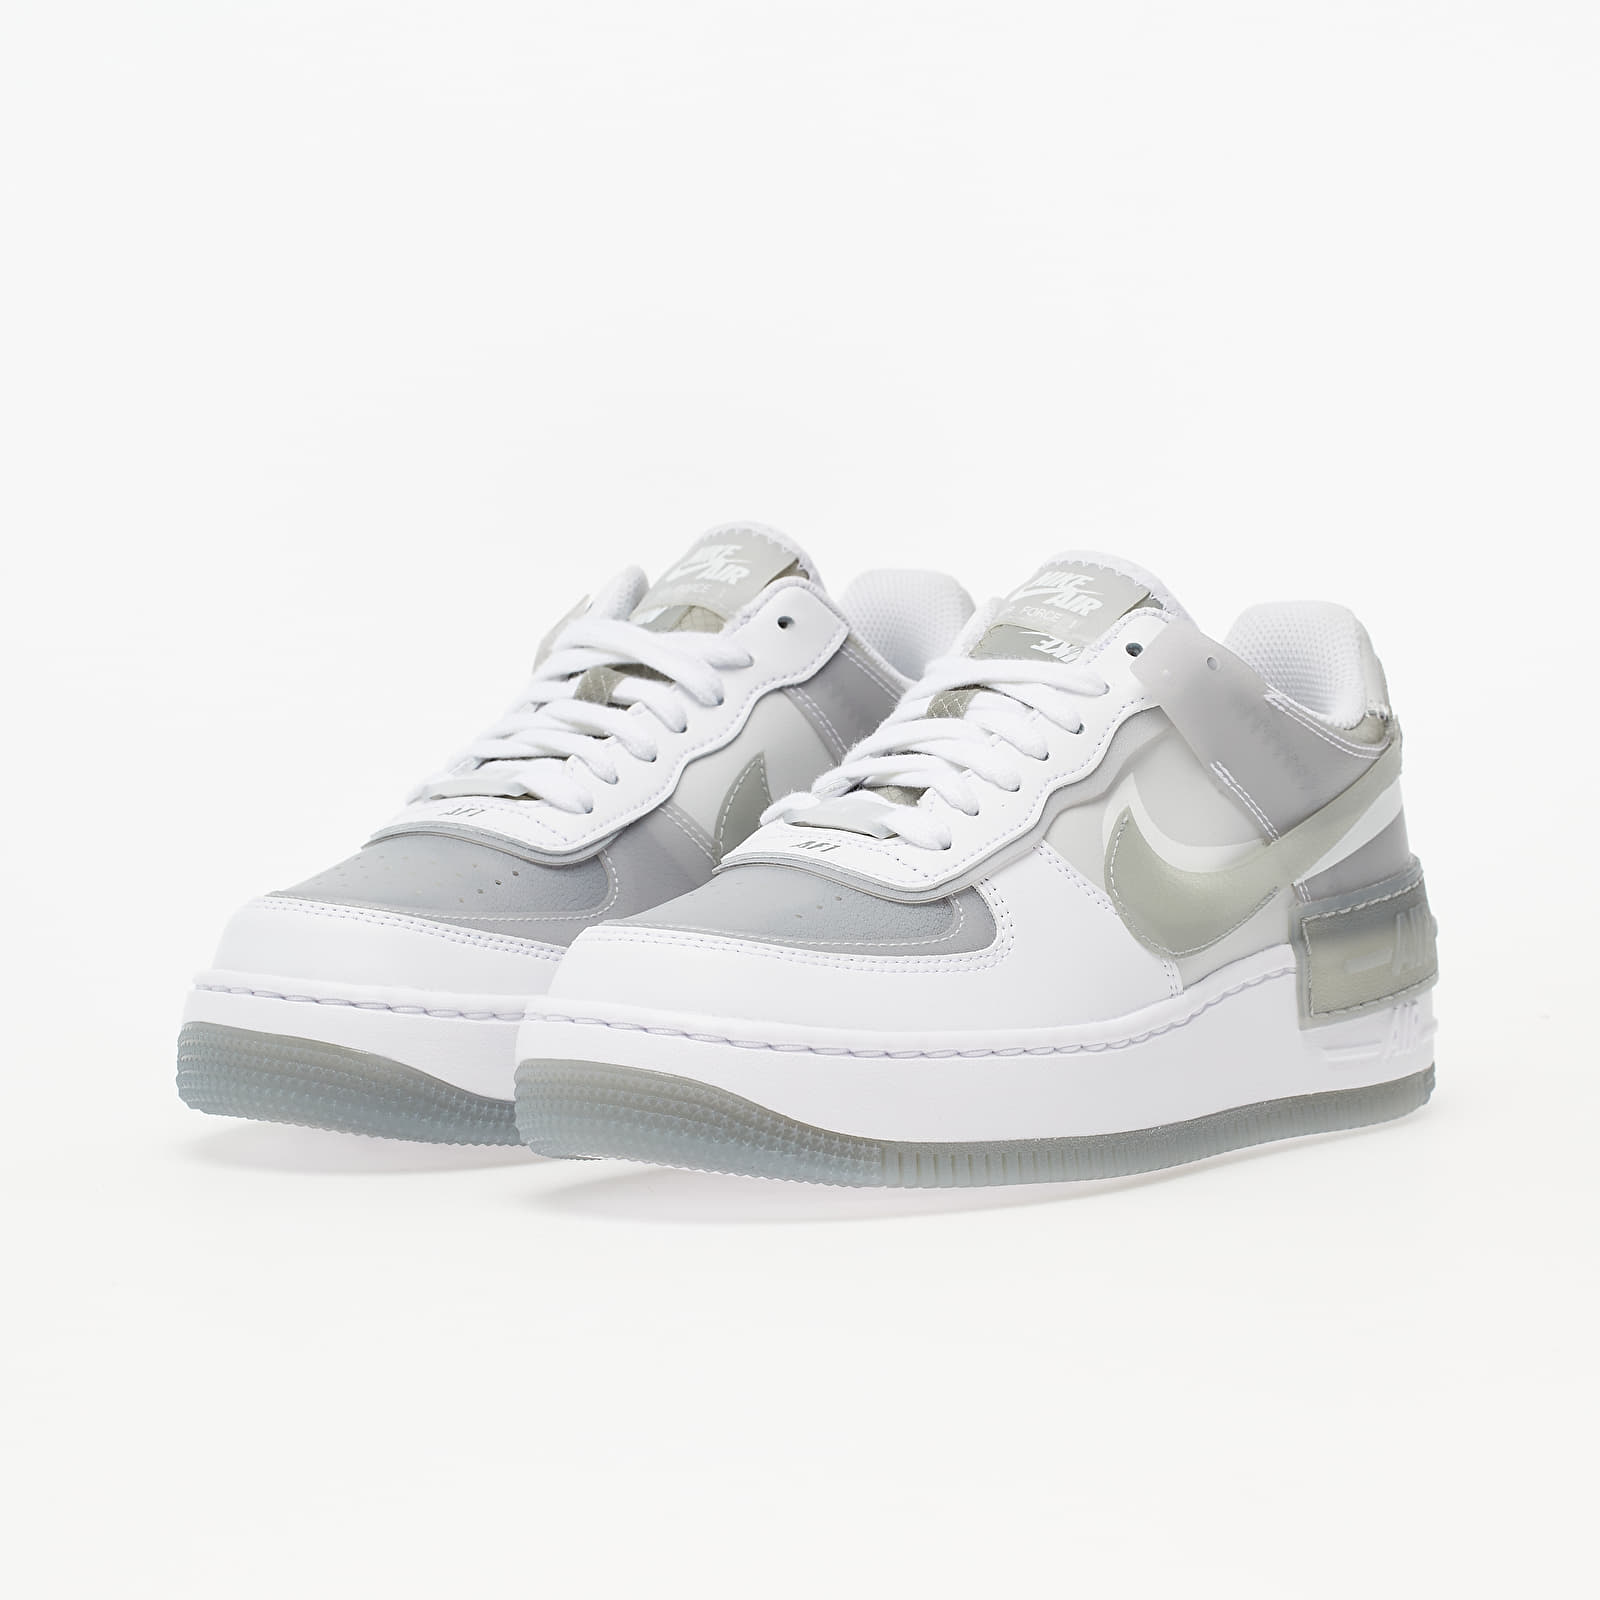 Chaussures et baskets femme Nike Air Force 1 Shadow SE White ...